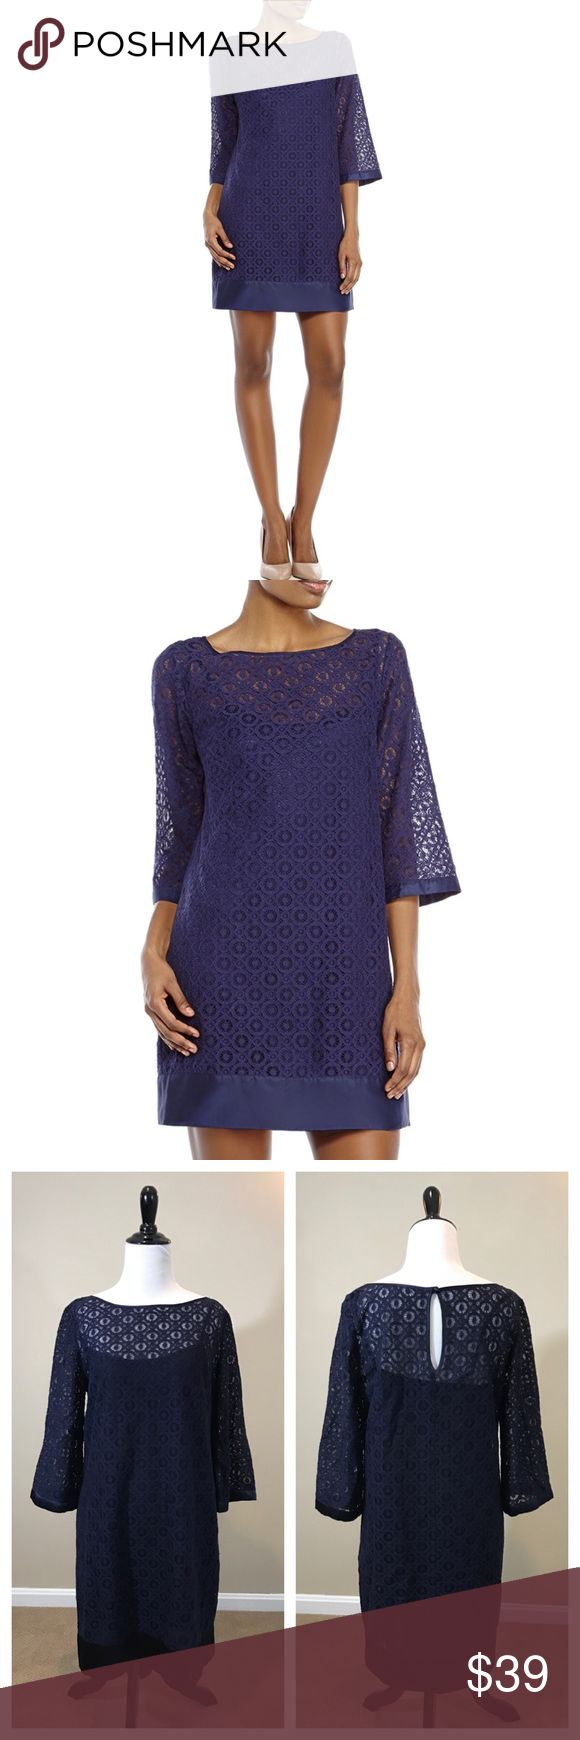 "Laundry Shelli Segal Navy Lace Boatneck Dress Navy blue crochet Lace overlay Dress by Laundry Shelli Segal. Boatneck. Cotton, nylon blend. No flaws, size 8. 34"" length 💕 Dresses"